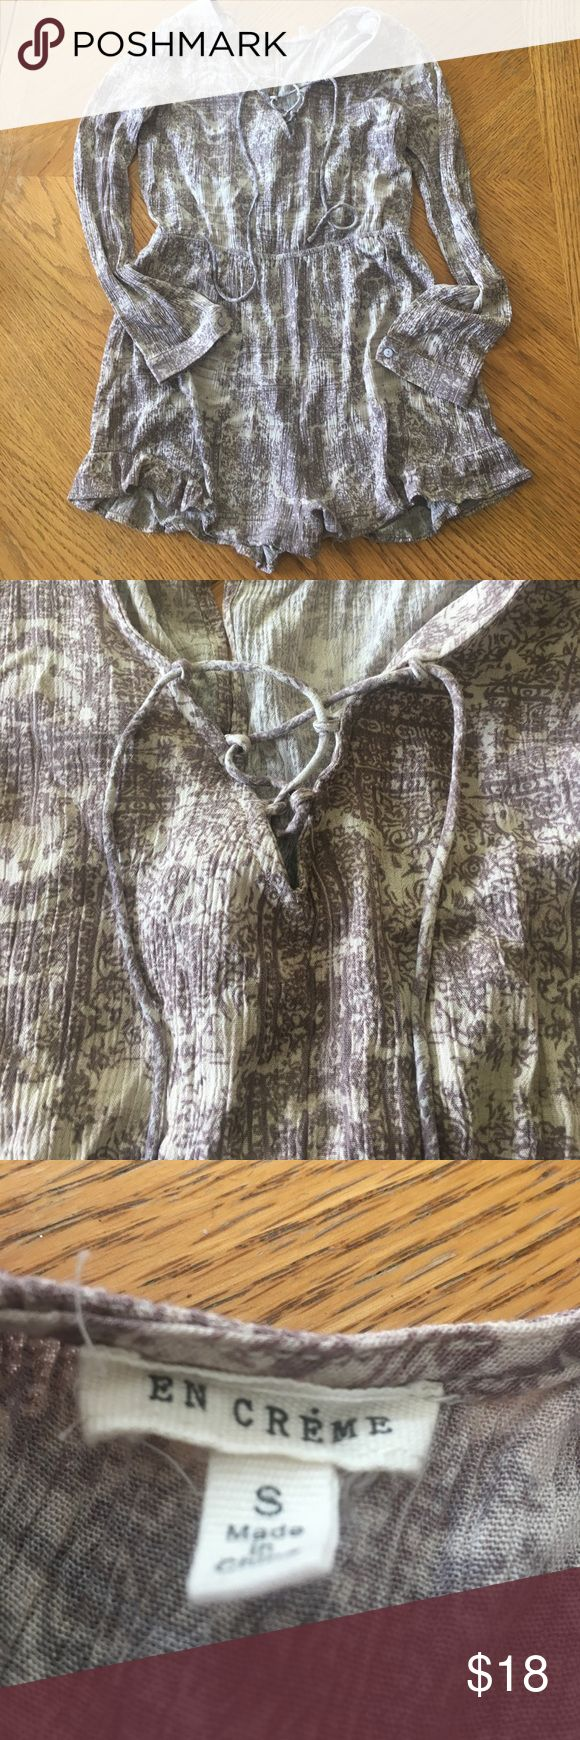 Lavender and cream long sleeved romper Small lavender and cream colored romper. Absolutely adorable on. Unfortunately it's too small for me. Only worn twice. Definitely a romper but I wasn't sure how to tag it - couldn't see a tag for romper. en creme Dresses Mini